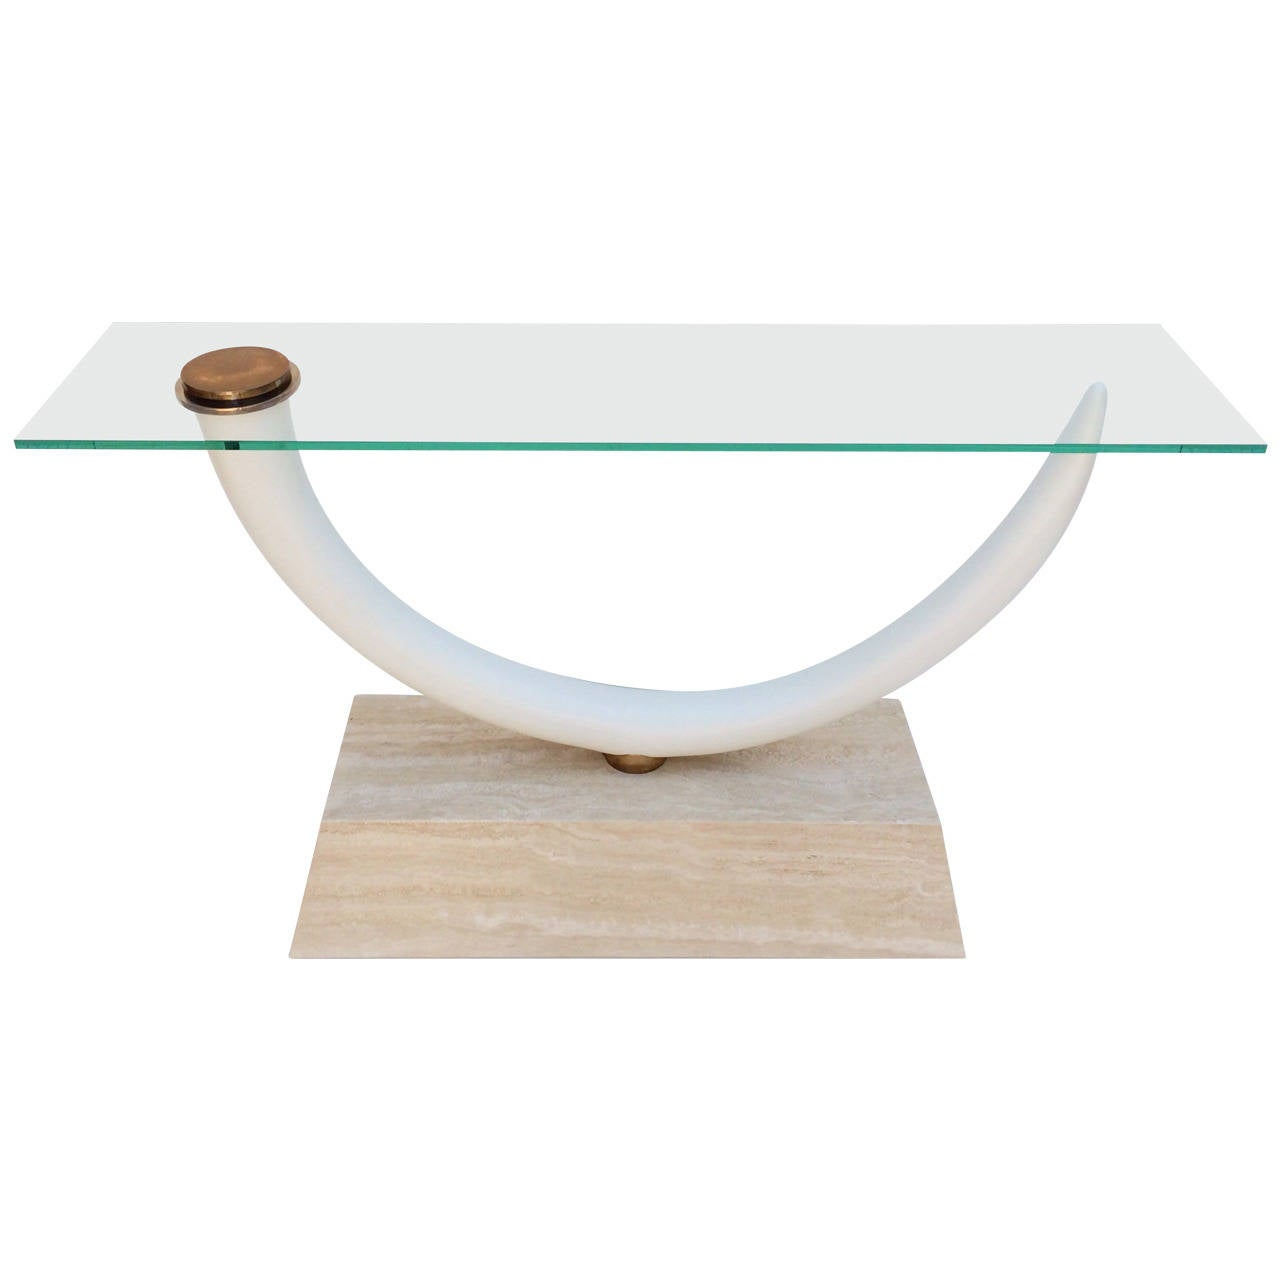 Faux tusk console table by maitland smith at 1stdibs faux tusk console table by maitland smith 1 geotapseo Images